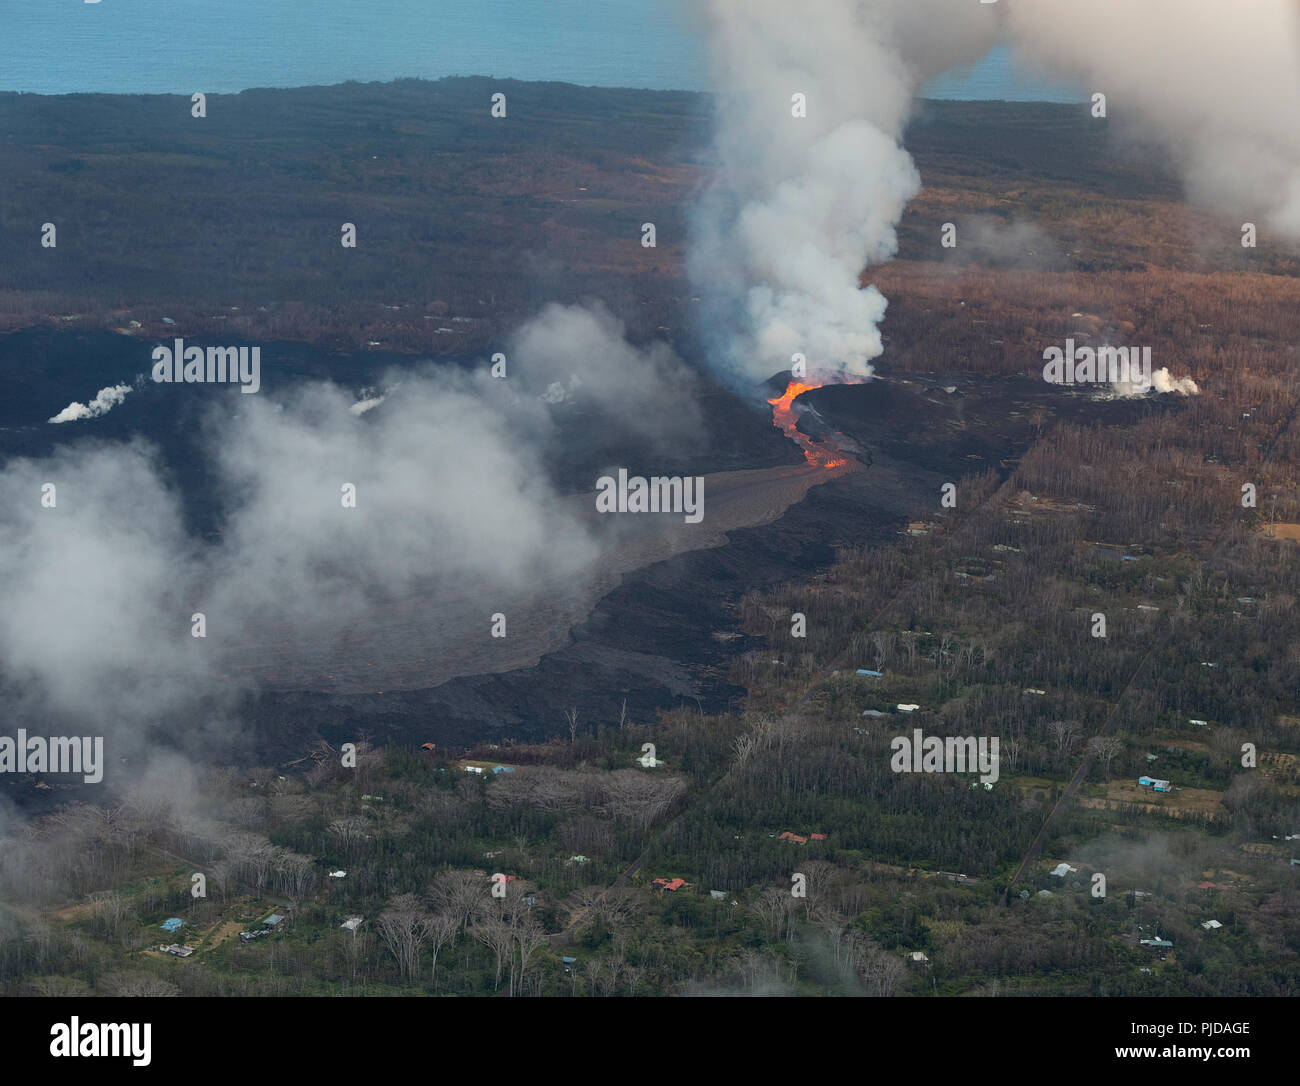 Aerial view of Kilauea Volcano east rift zone erupting hot lava from Fissure 8 in the Leilani Estates residential subdivision near Pahoa, Puna, Hawaii - Stock Image